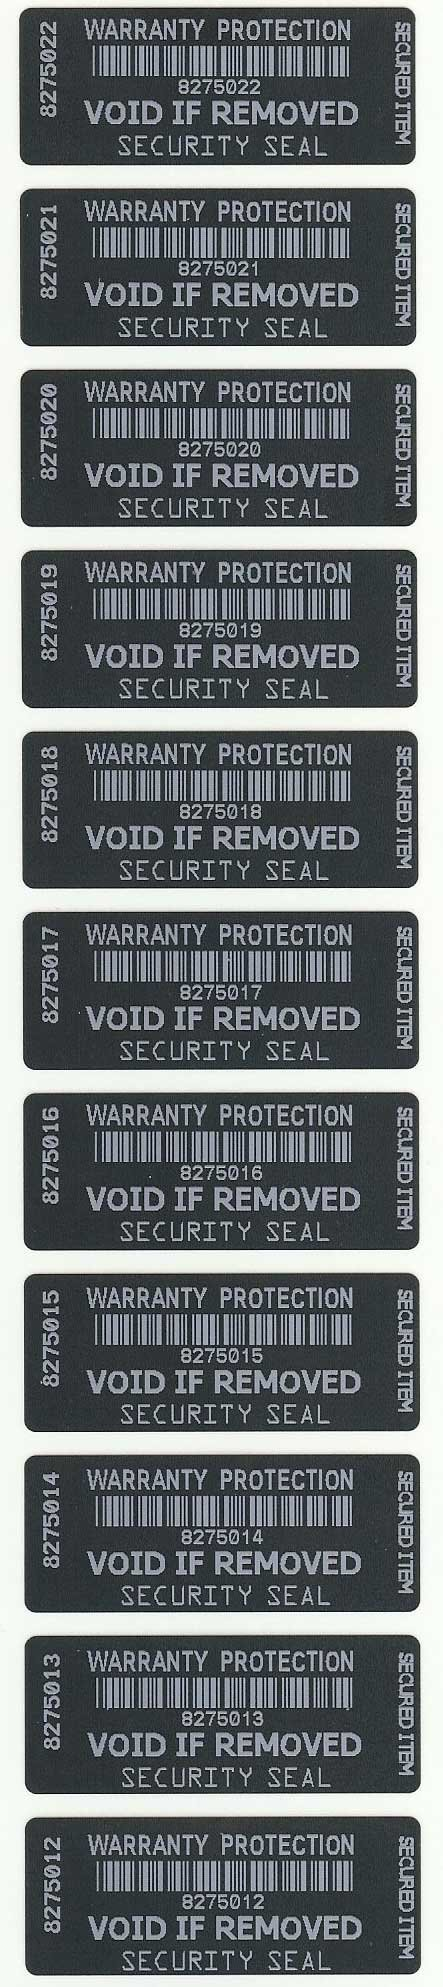 Warranty Void Black with White Printing Tamper Evident Security Labels / Stickers X 250 Each with Unique Serial Number